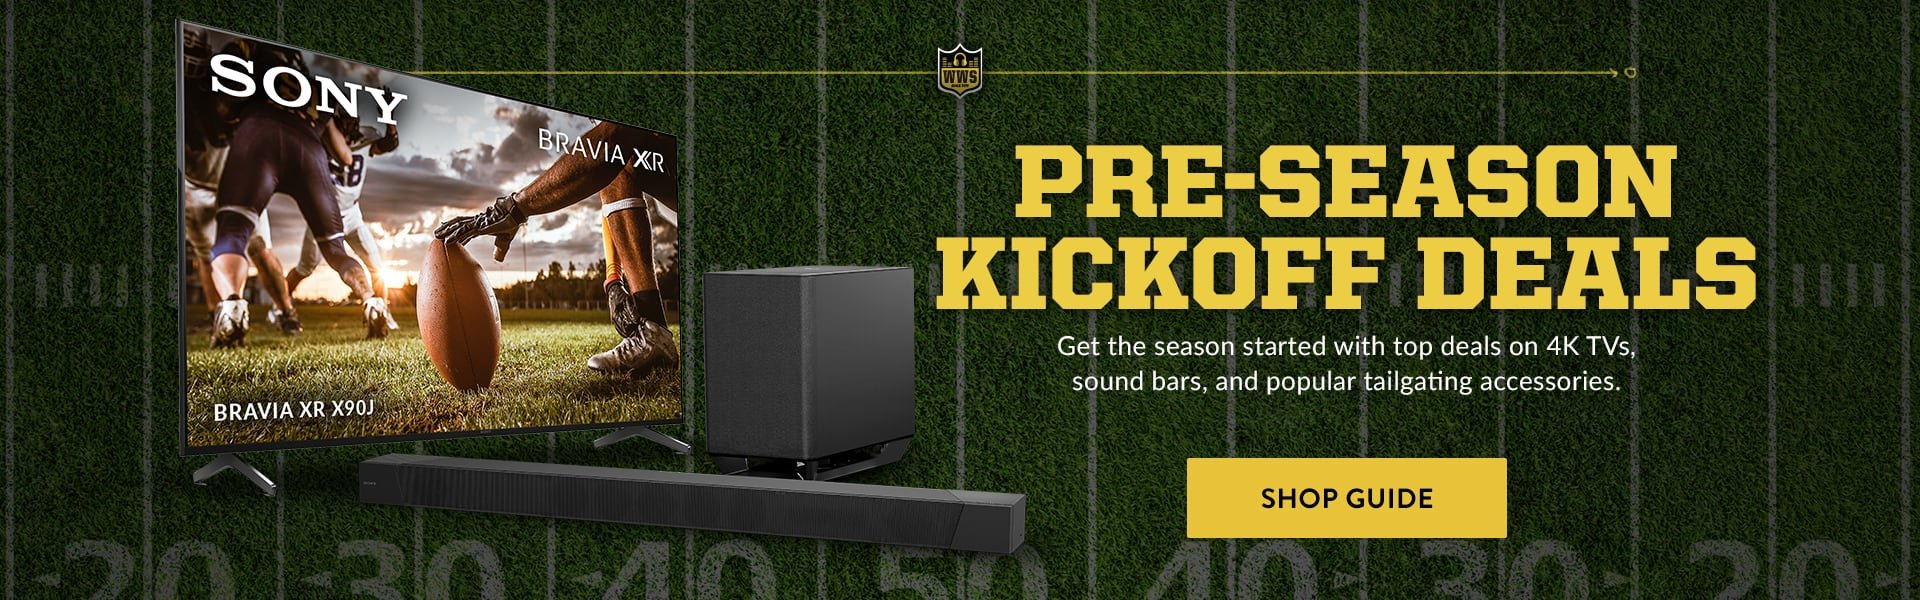 Save on TVs, sound bars, and other football accessories.